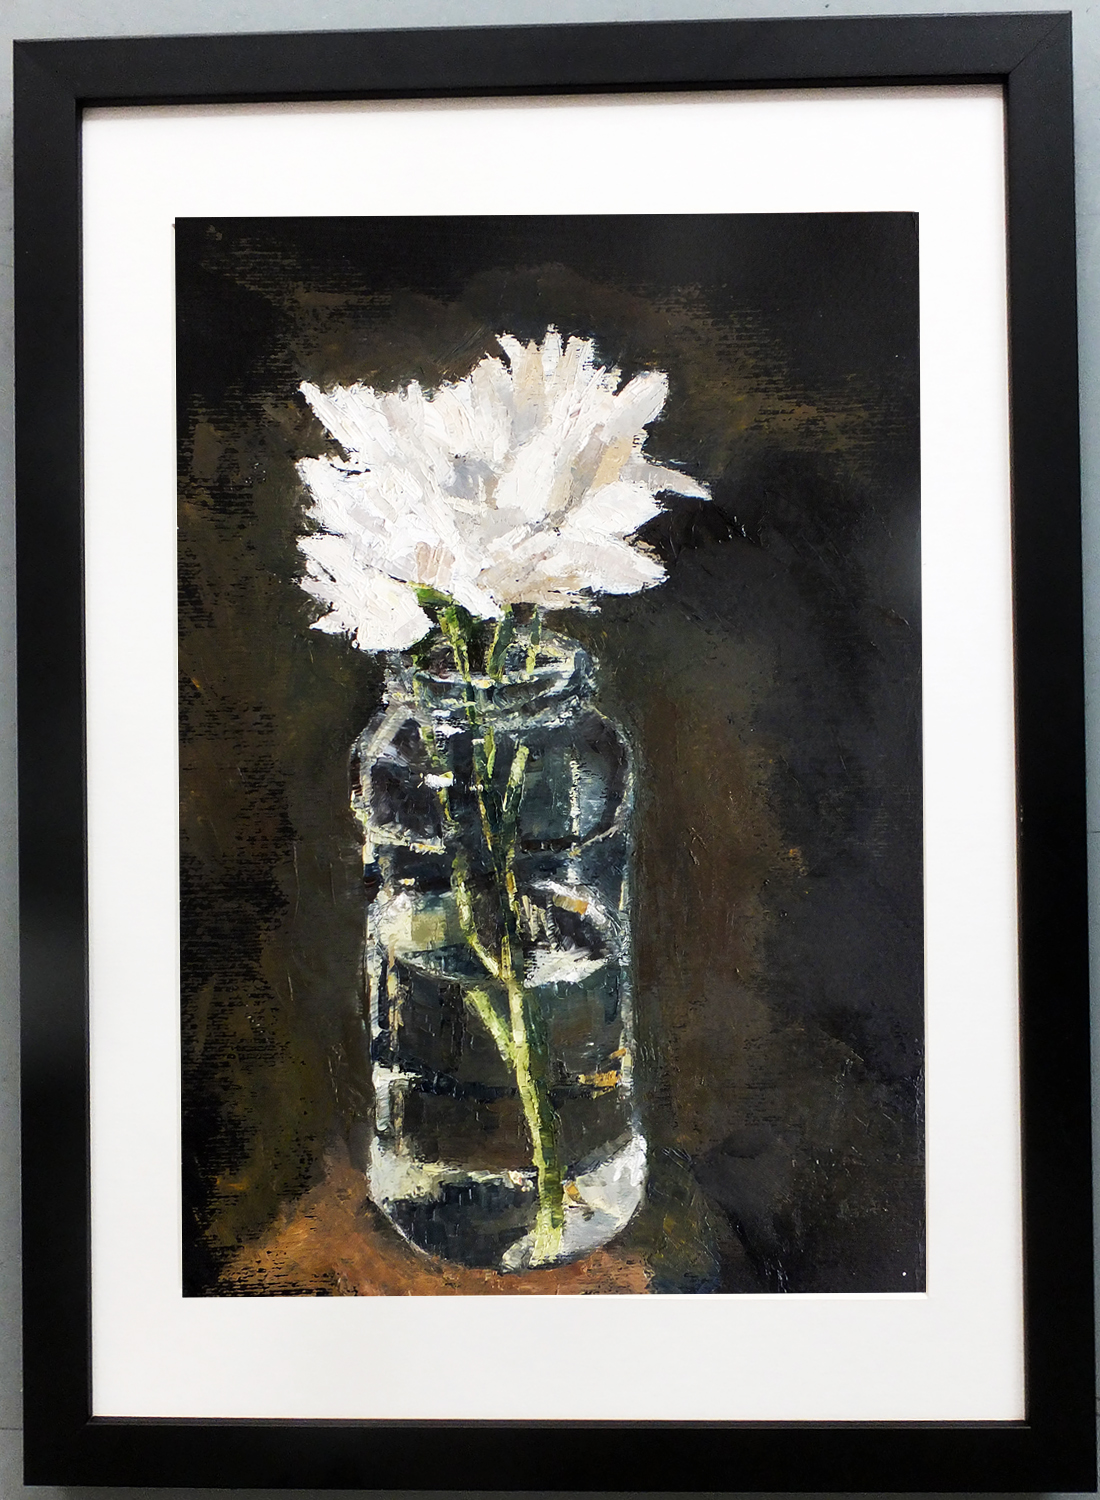 Chrysantemums study I, oil on paper, 42x30cm